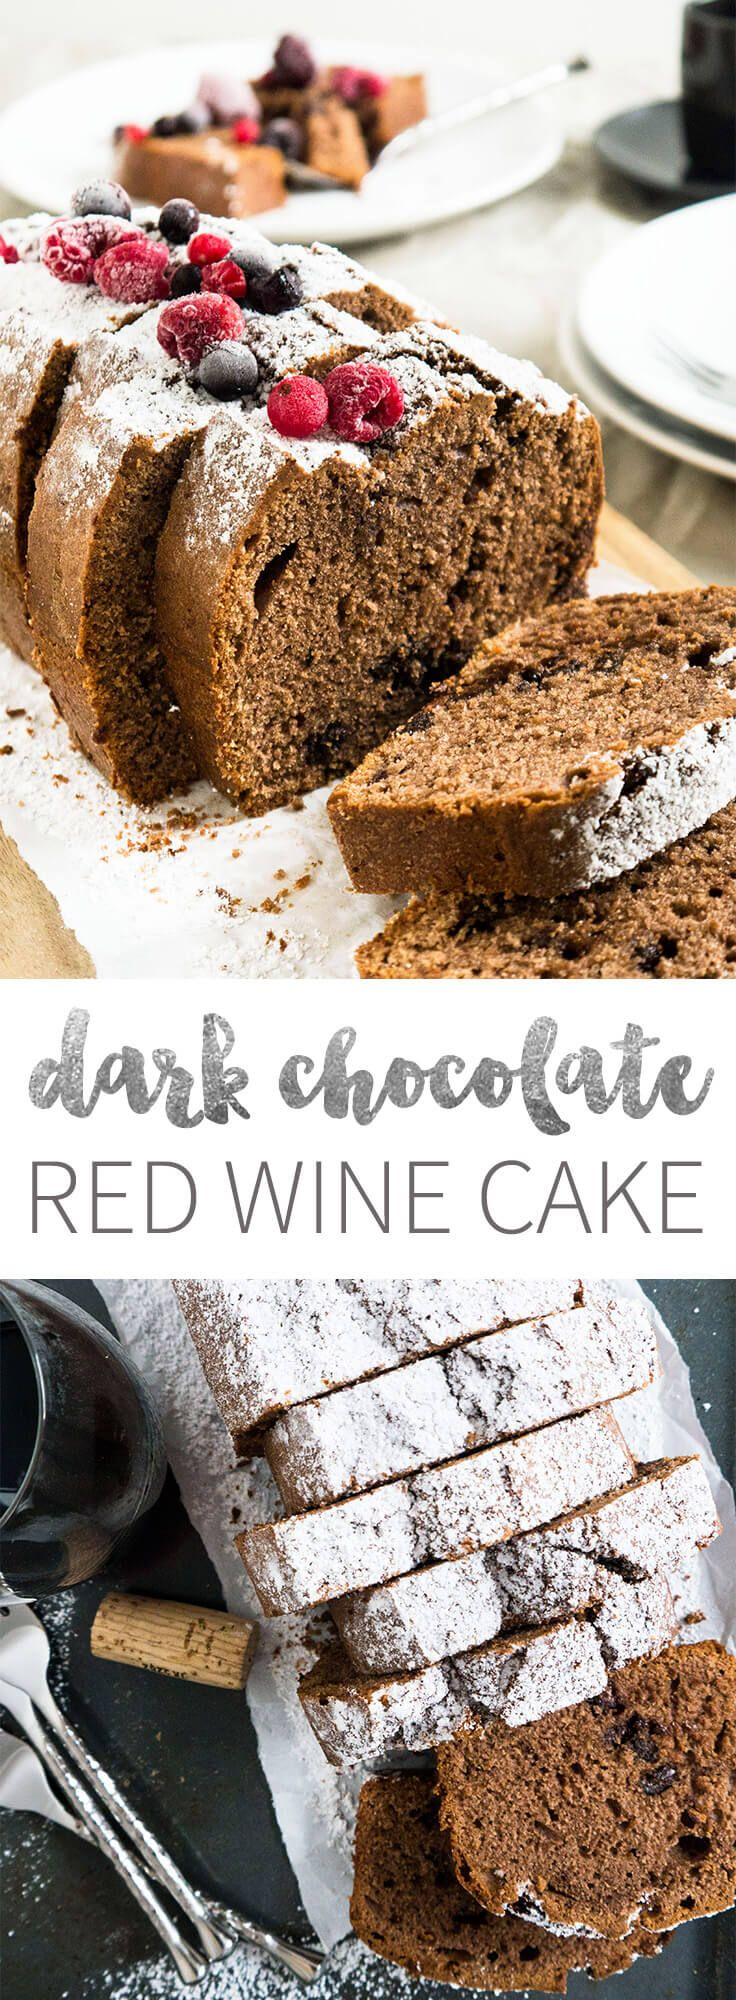 Dark Chocolate Red Wine Cake combines all those delicious red wine flavors with your favorite chocolate!